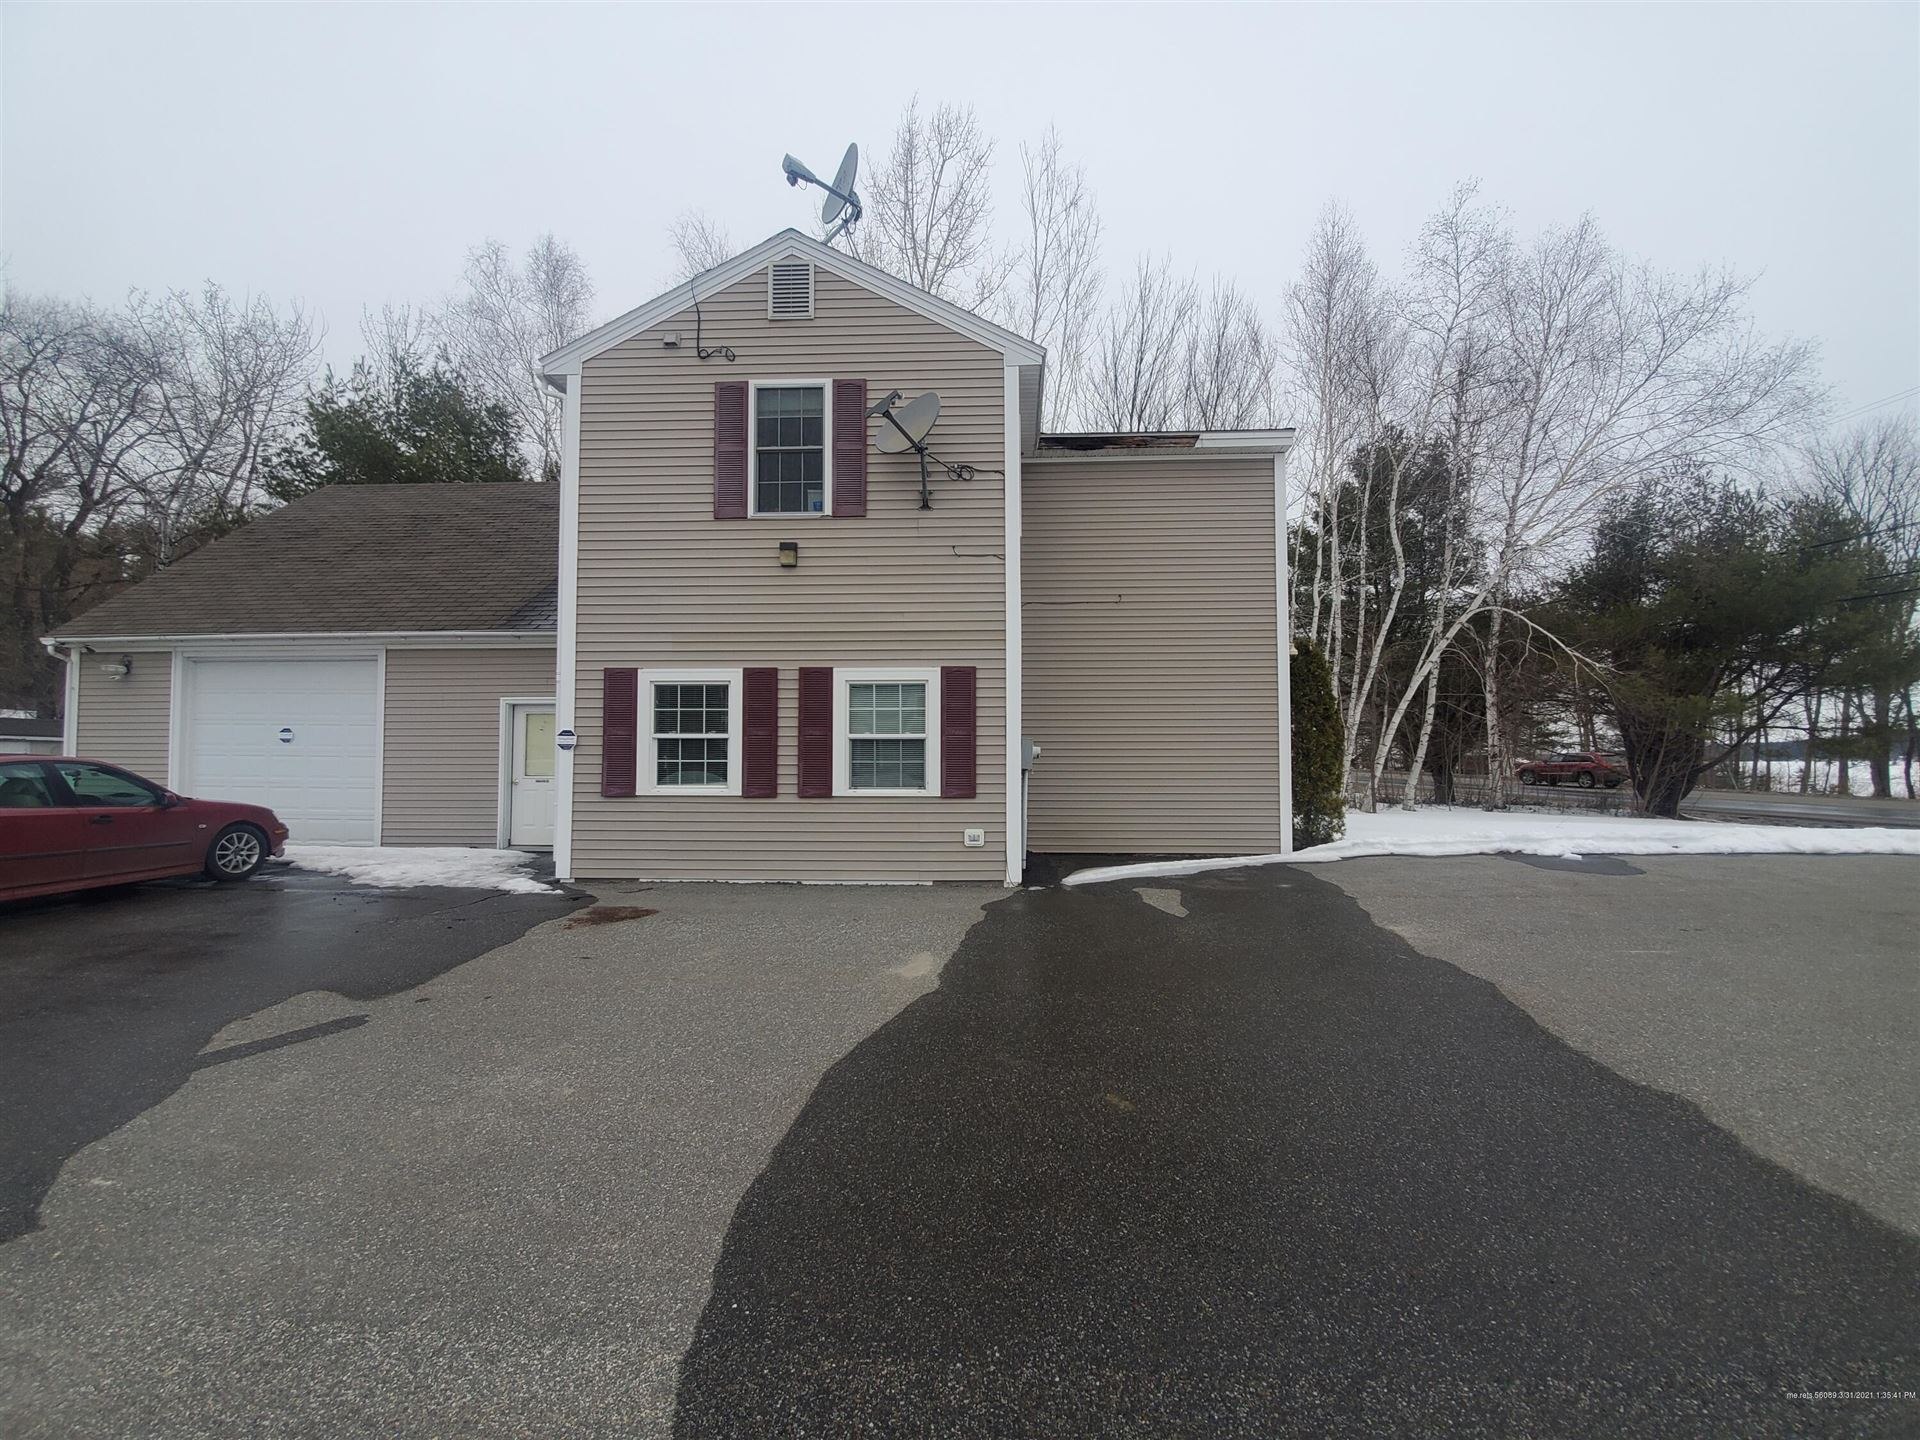 Photo of 190 Route 133, Winthrop, ME 04364 (MLS # 1485862)